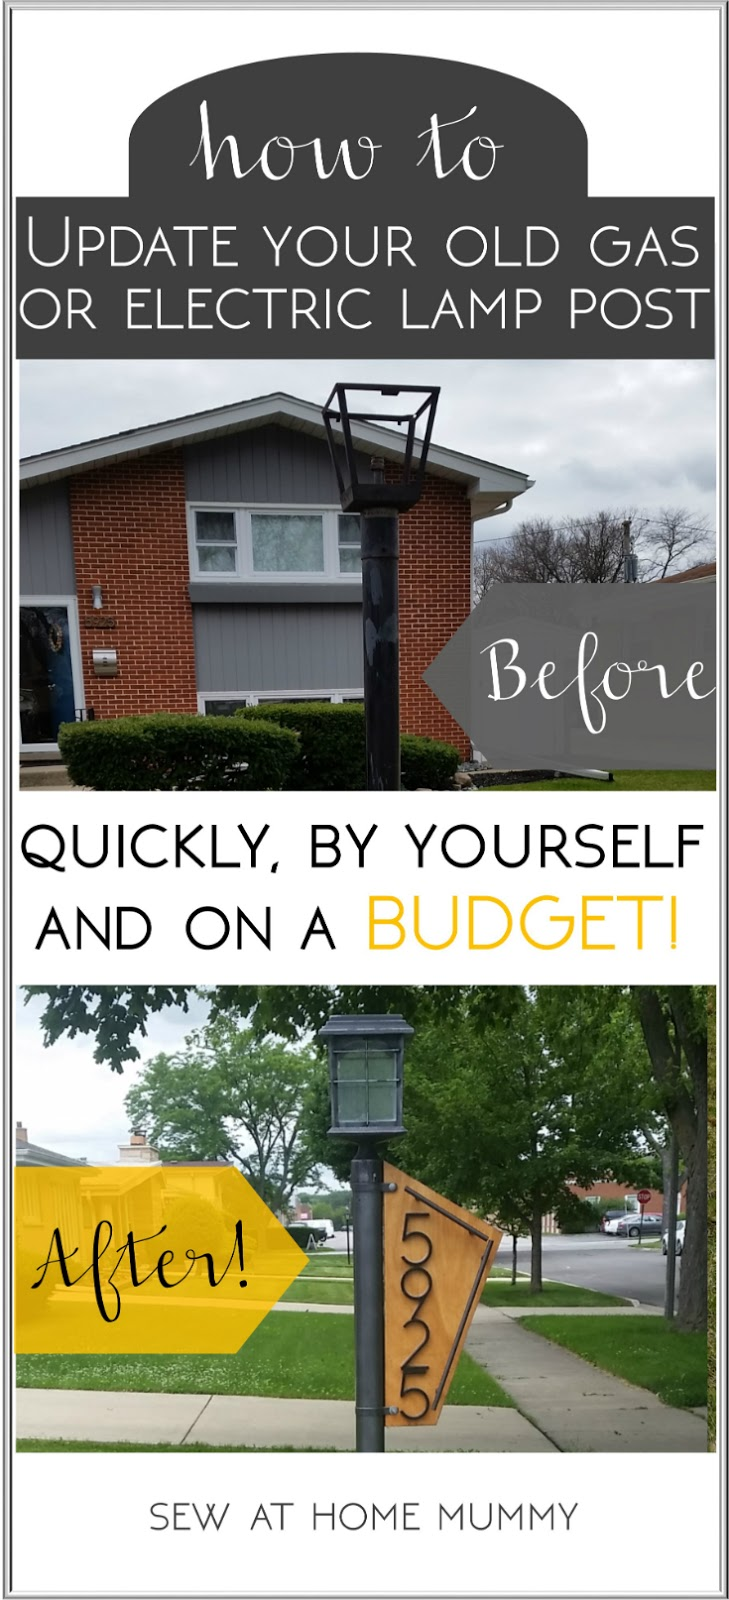 How to quickly and easily update your yard lamp post - by yourself! Easy solar conversion tutorial, step by step, including links to supplies and lighting ideas!